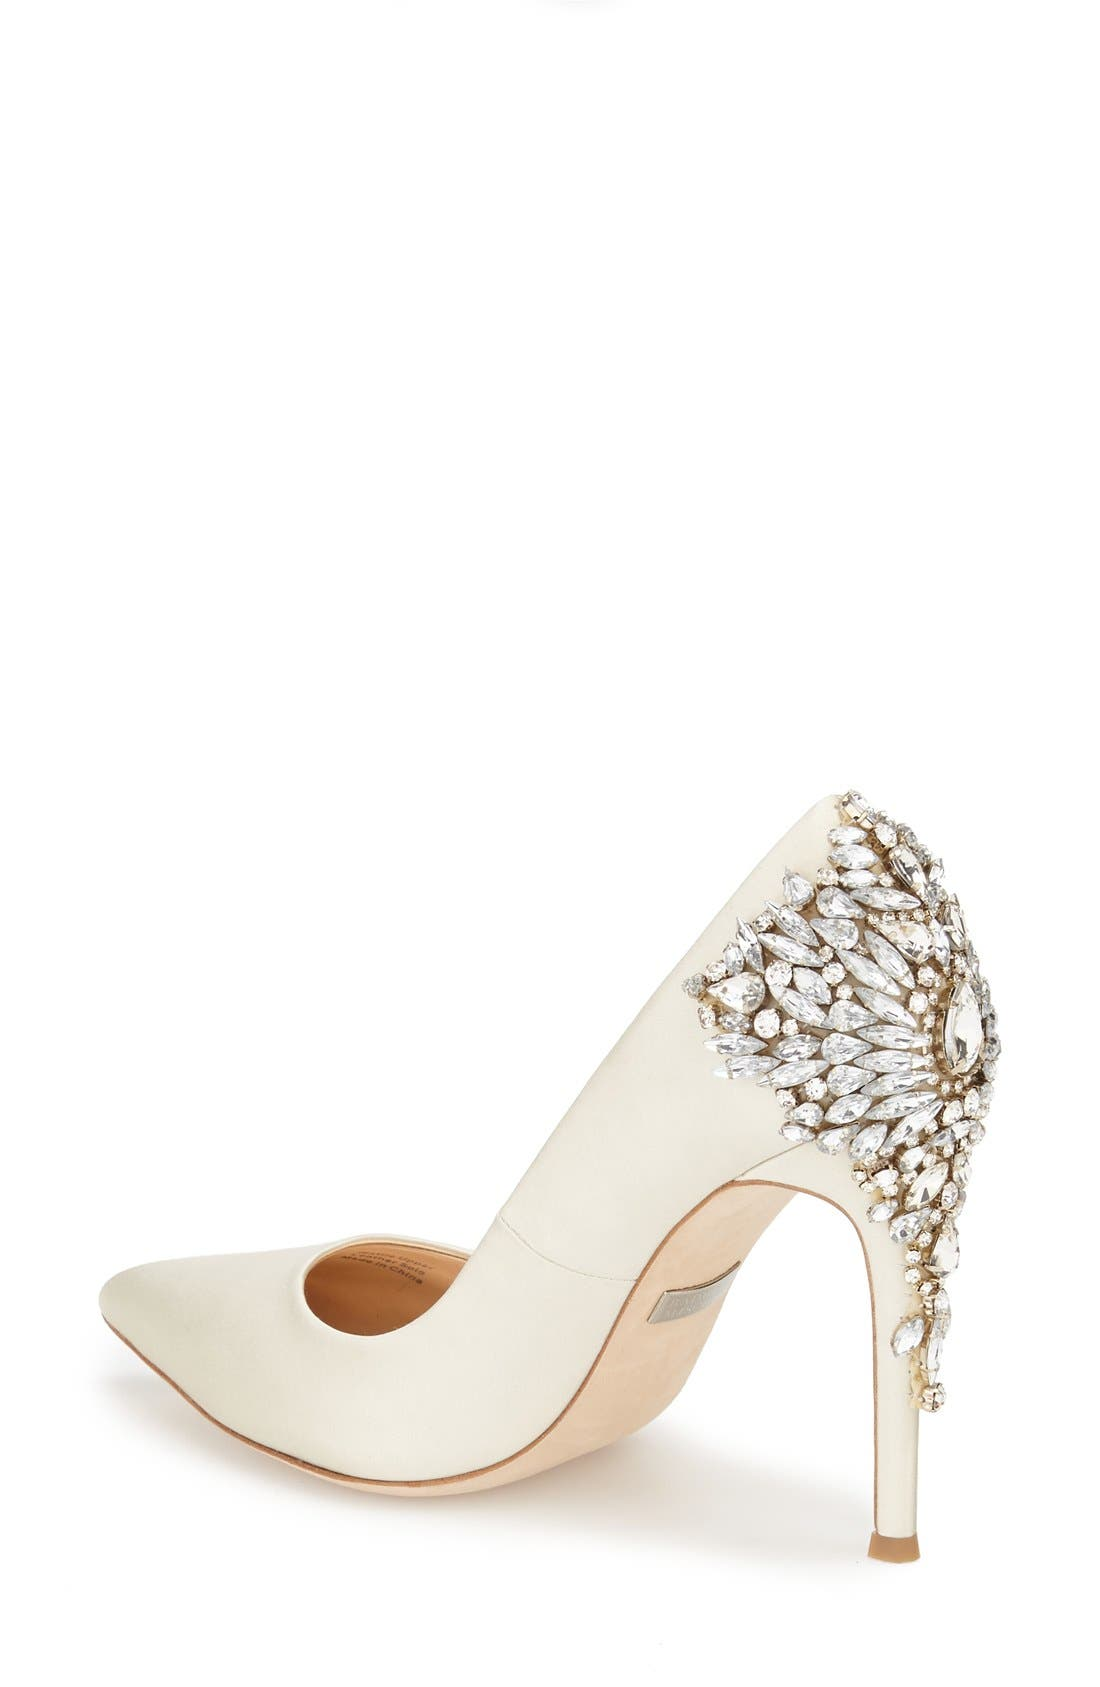 'Gorgeous' Crystal Embellished Pointy Toe Pump,                             Alternate thumbnail 2, color,                             Ivory Satin